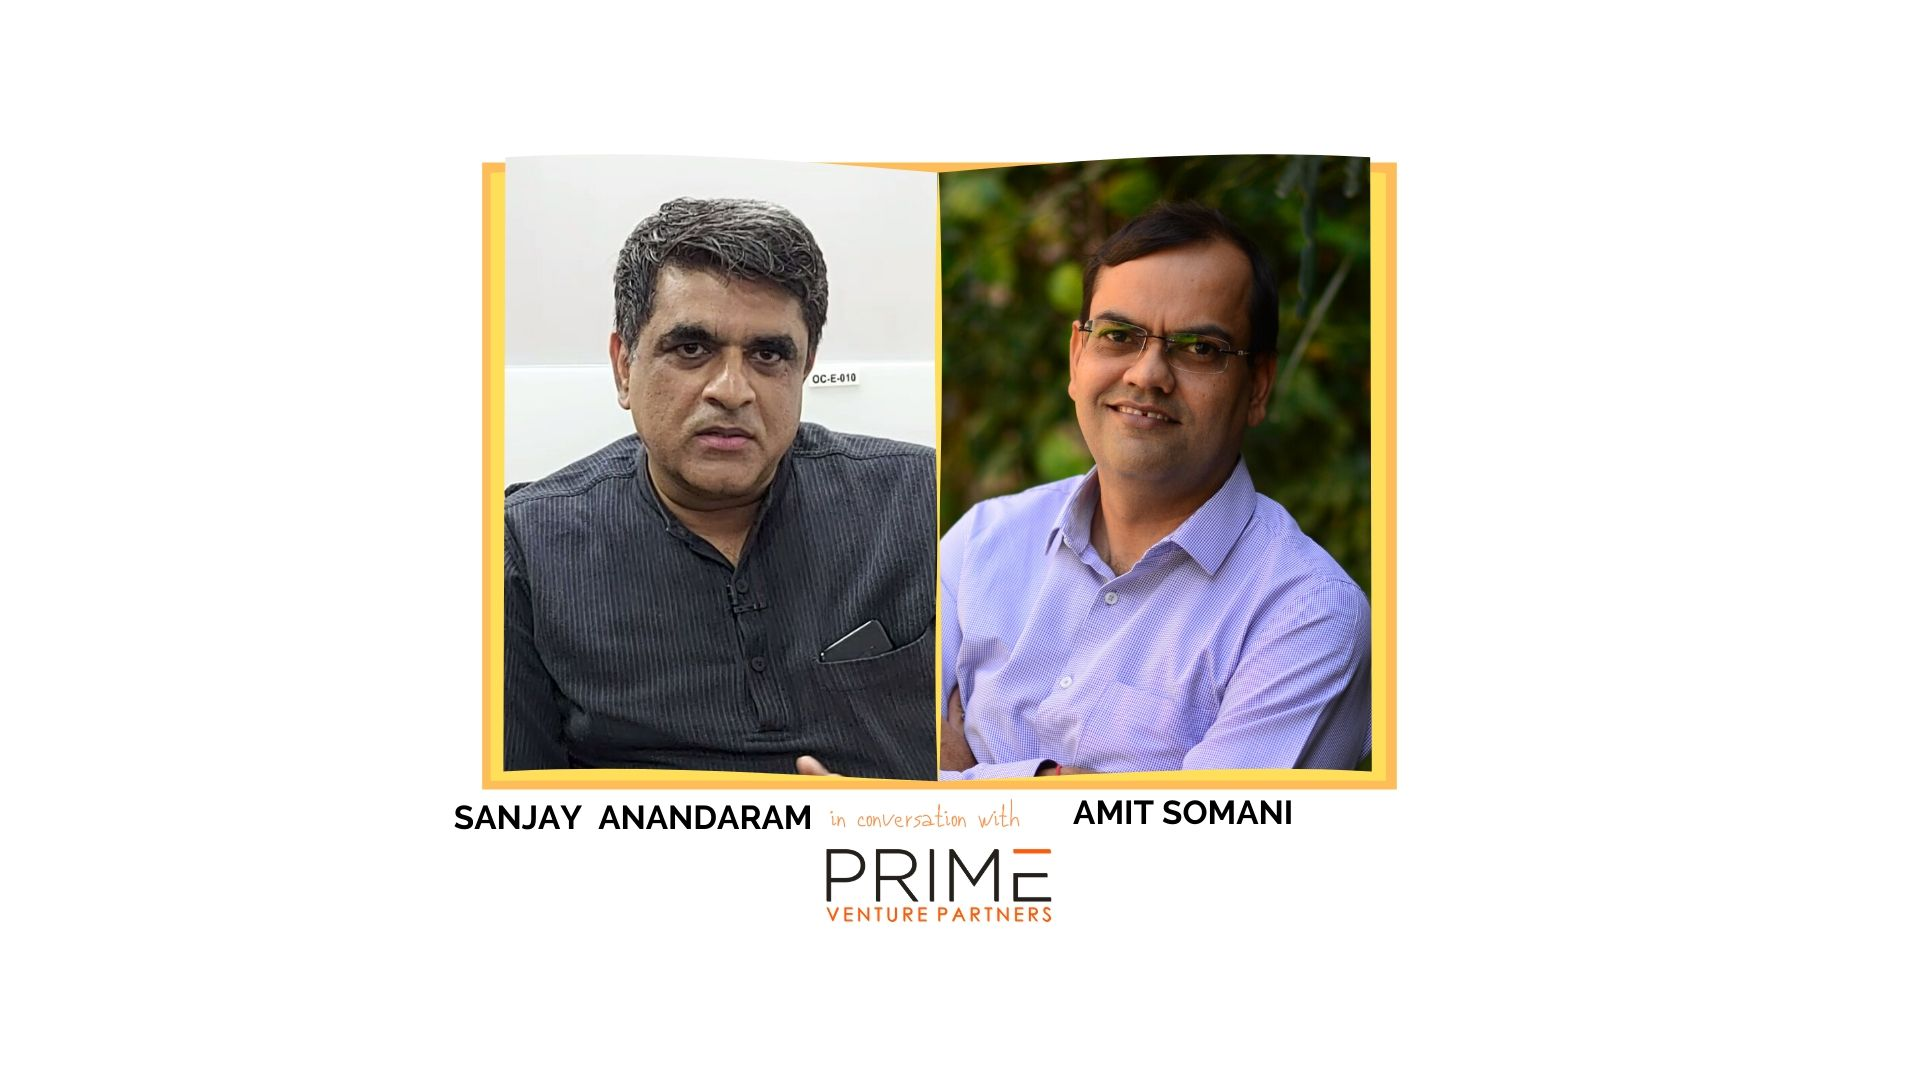 A graphic with guest(Sanjay Anandaram) and host's (Amit Somani) name and image.